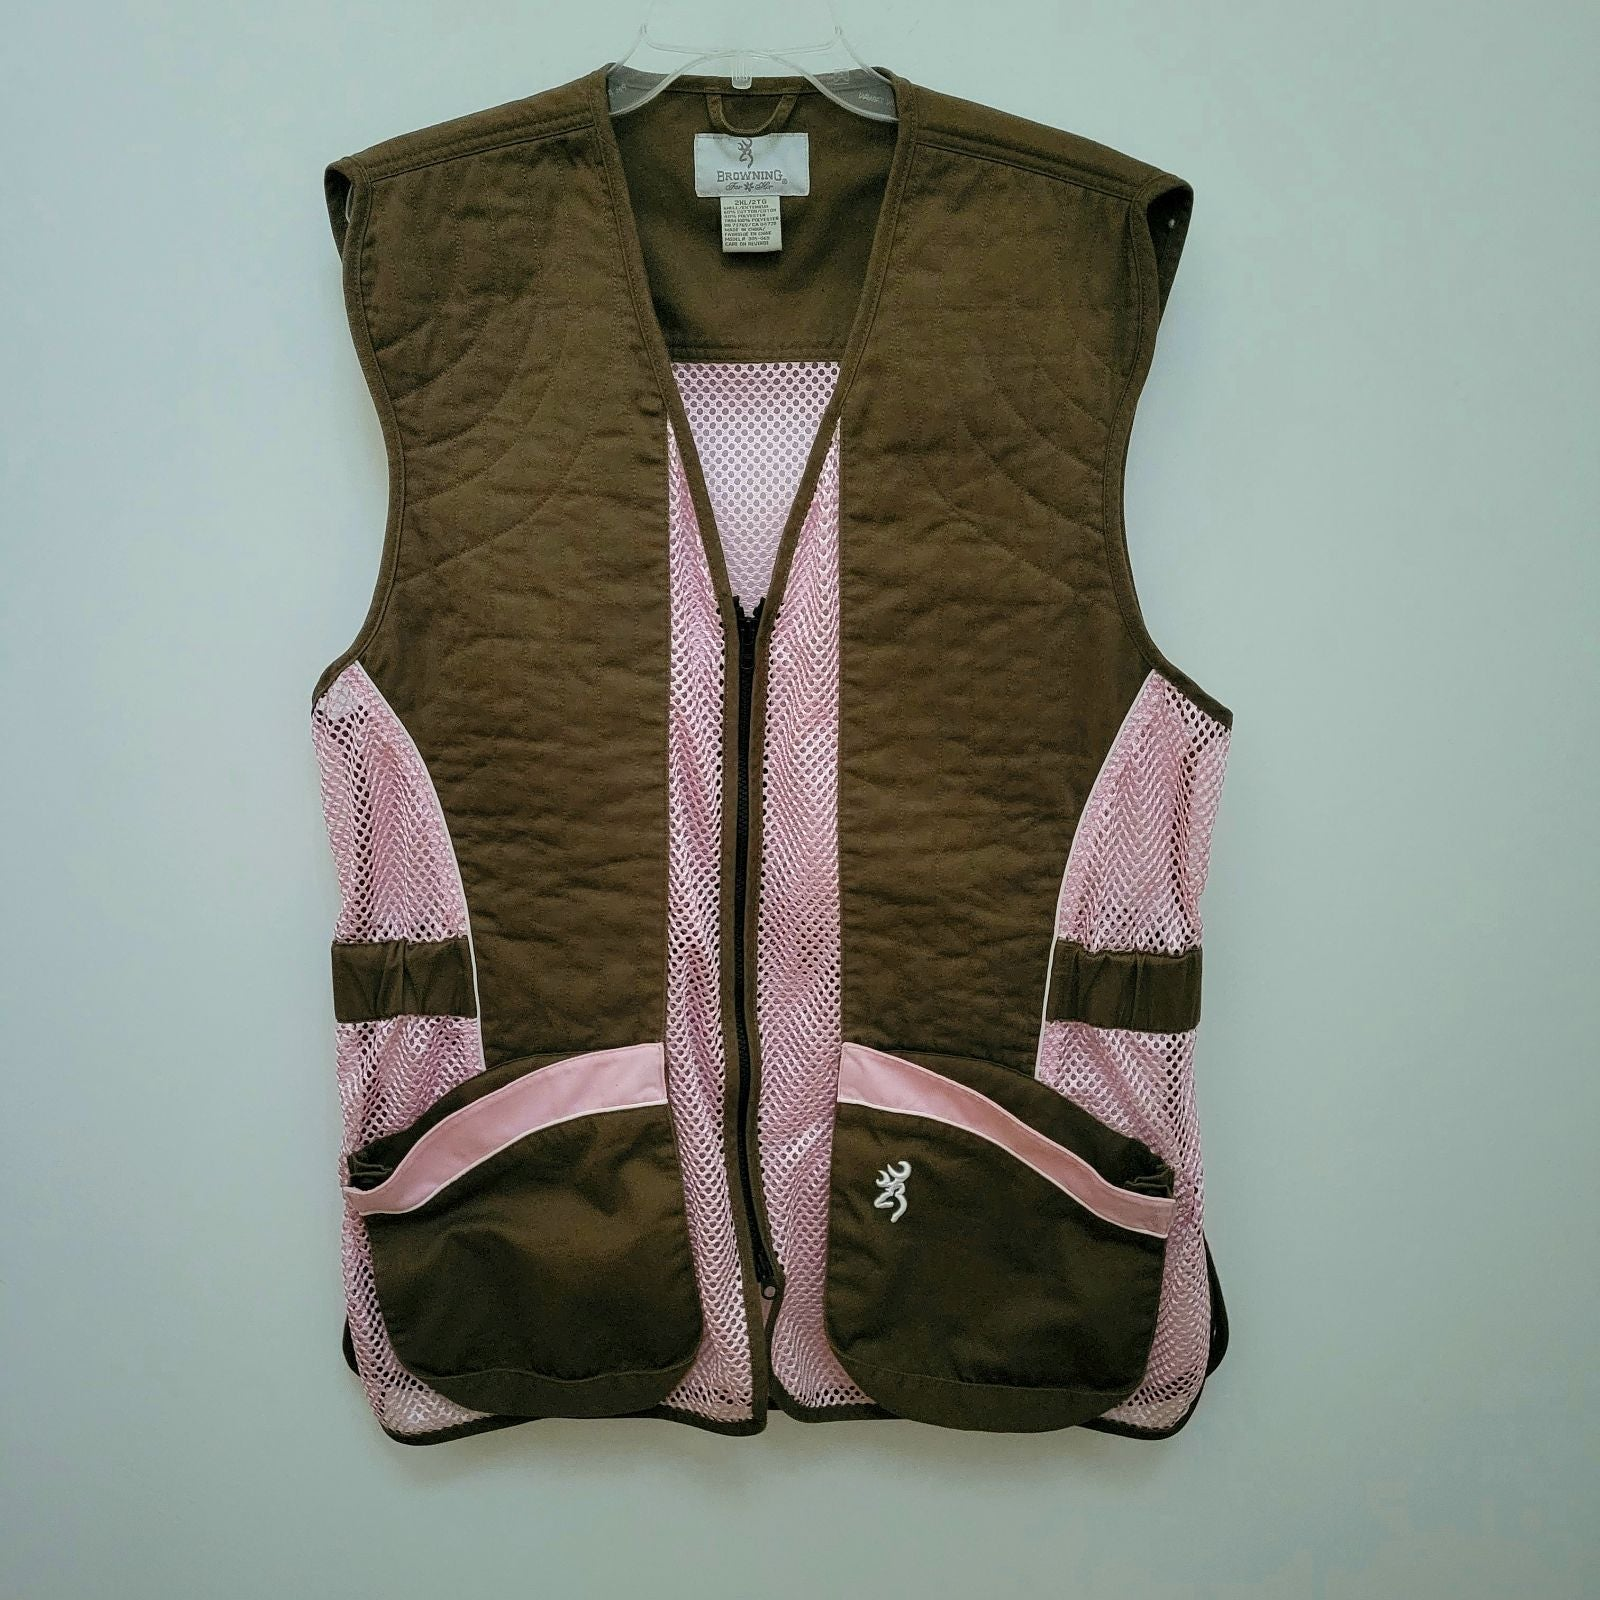 Browning Vest for her 2xl